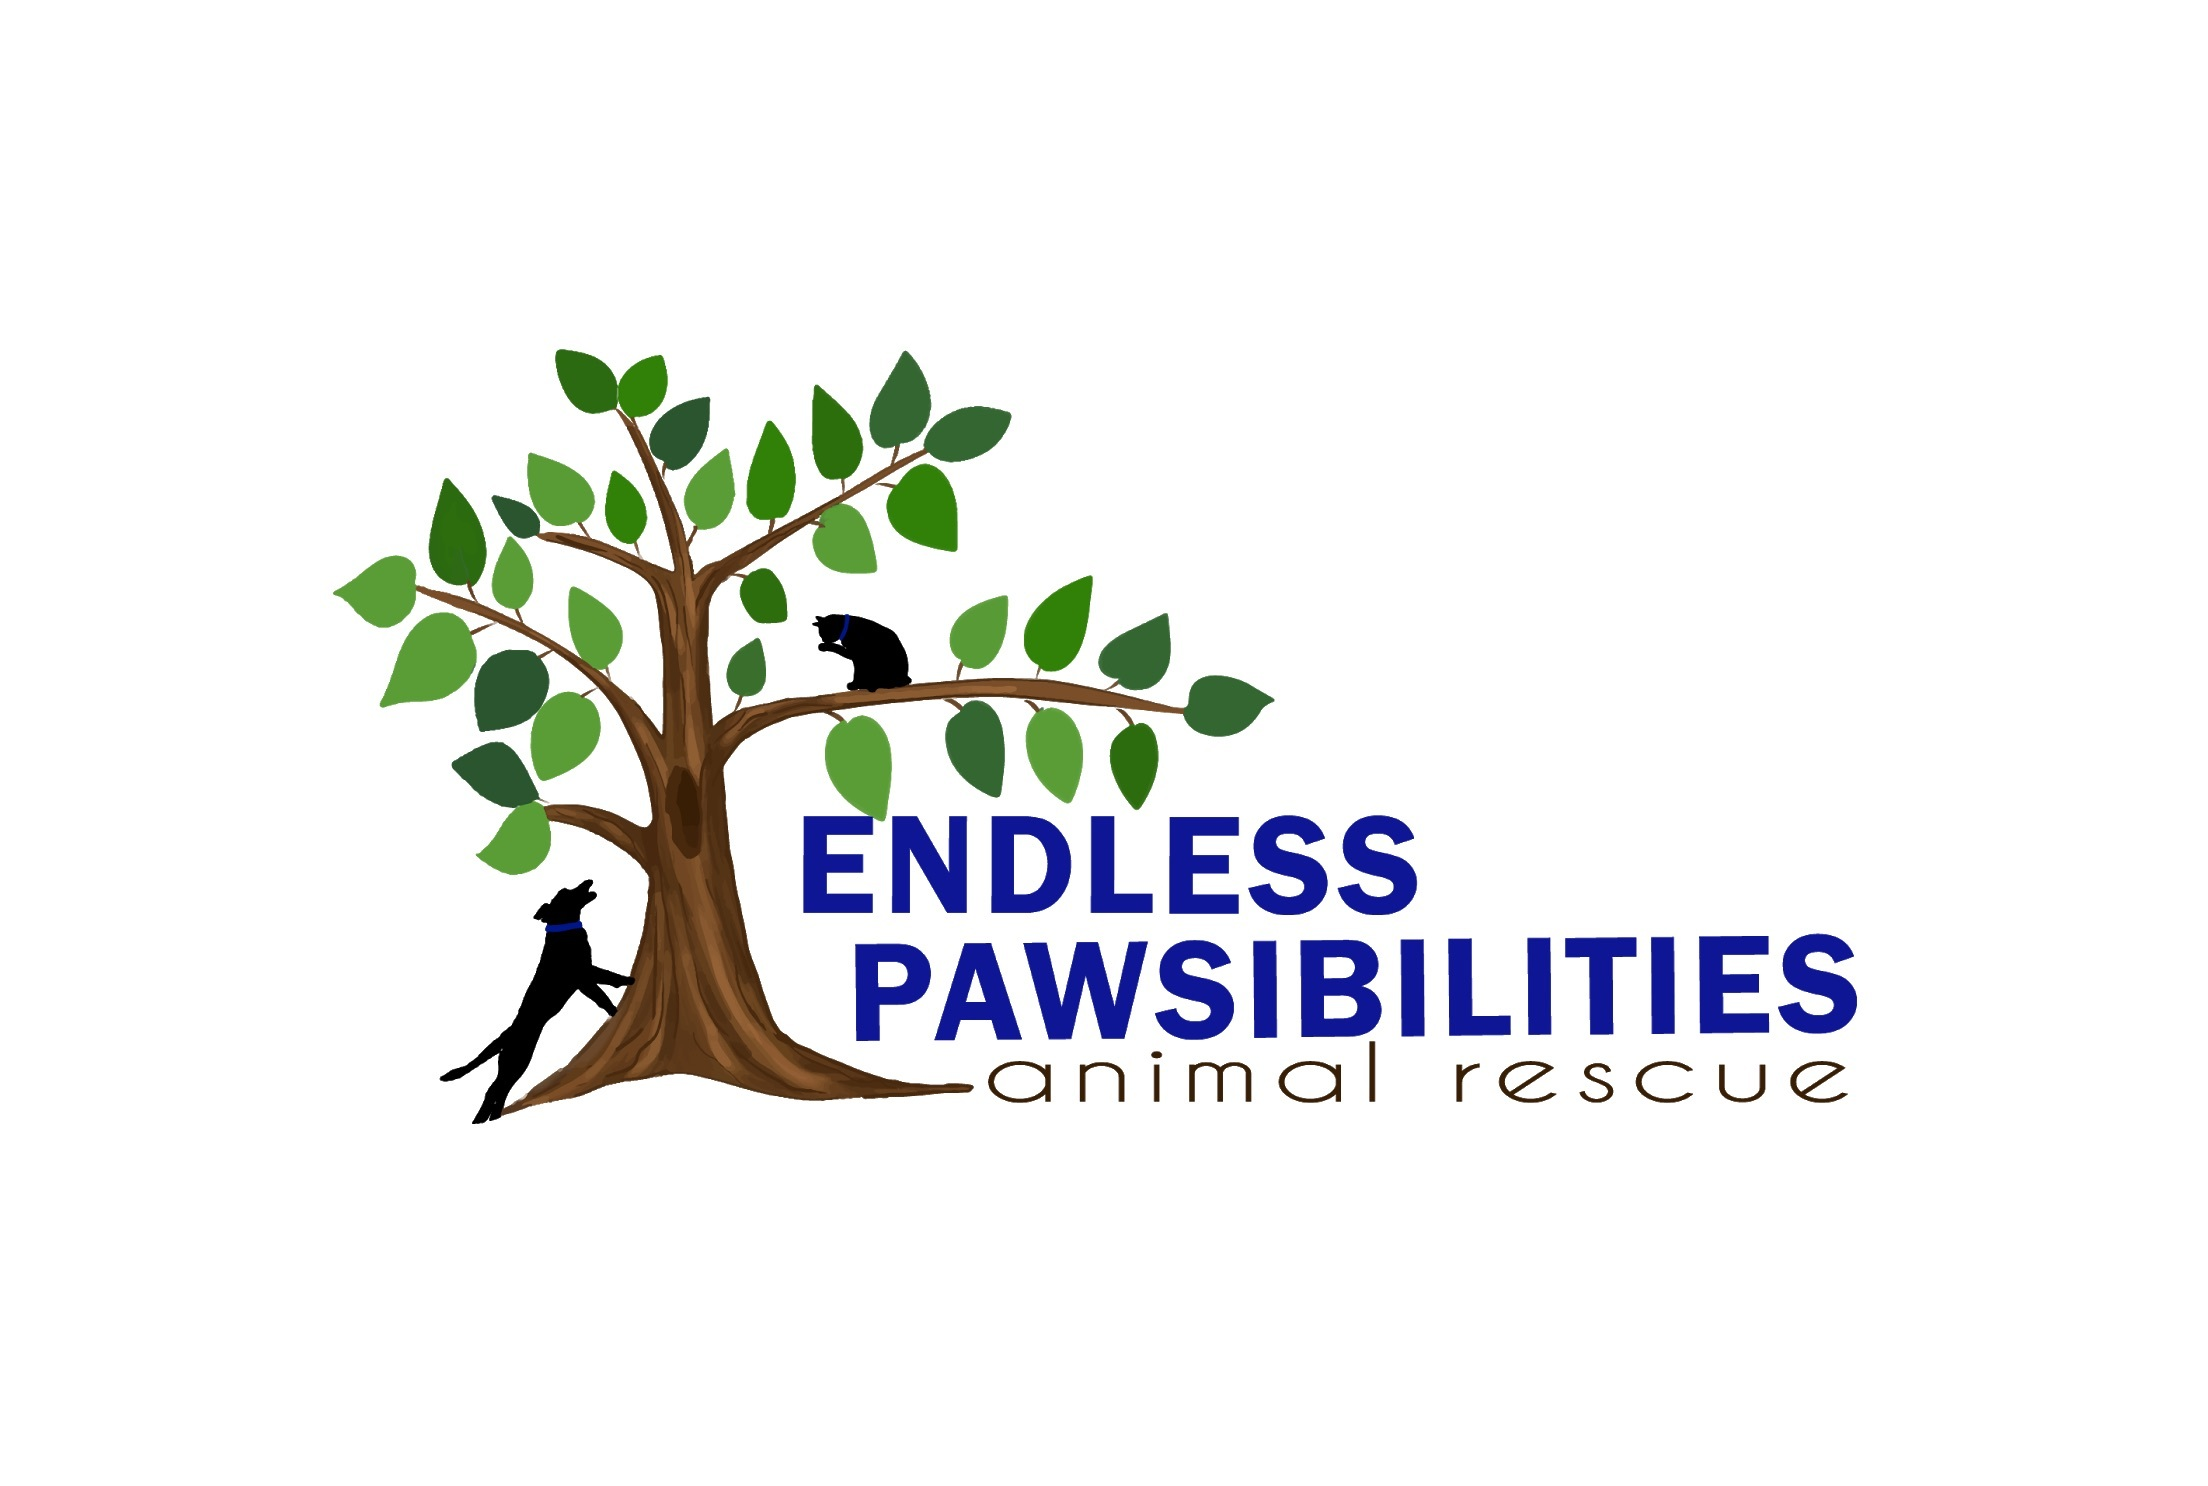 Endless Pawsibilities Animal Rescue